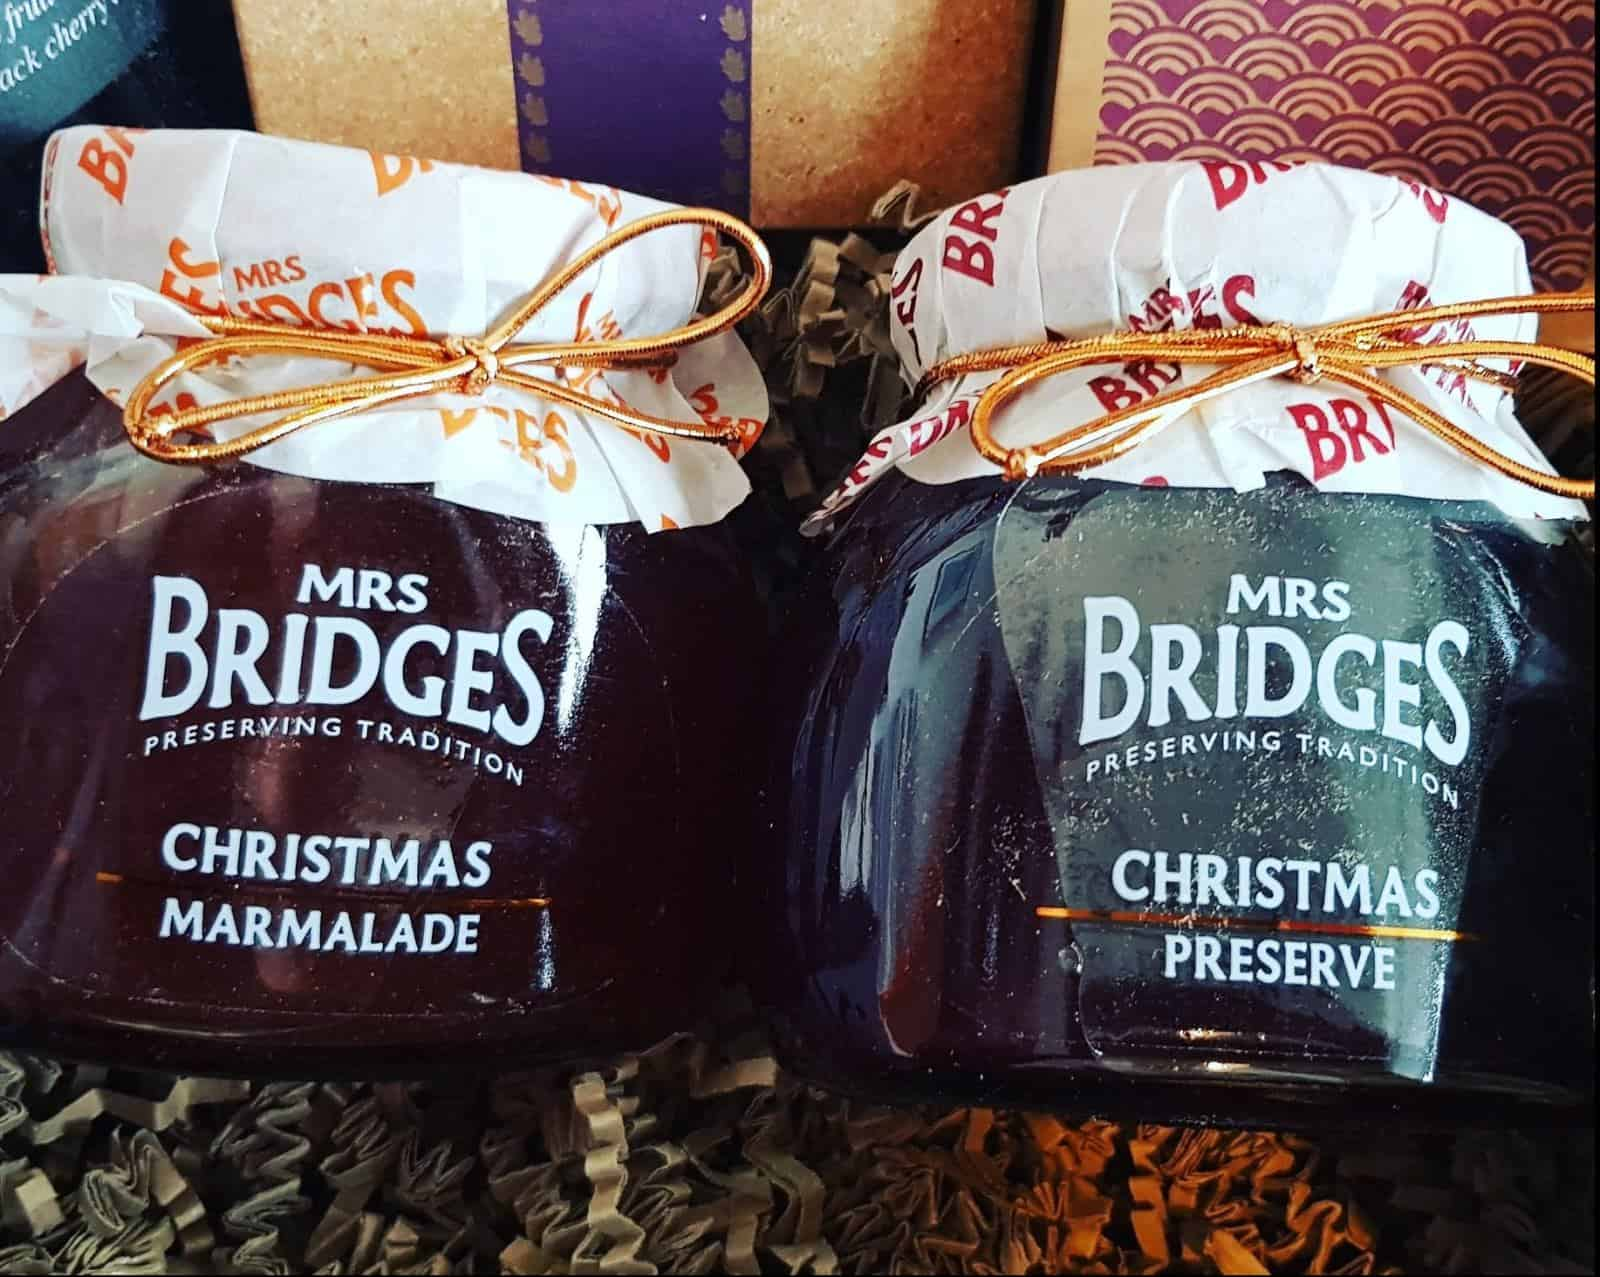 Mrs Bridges Christmas Preserves - Prestige Hampers